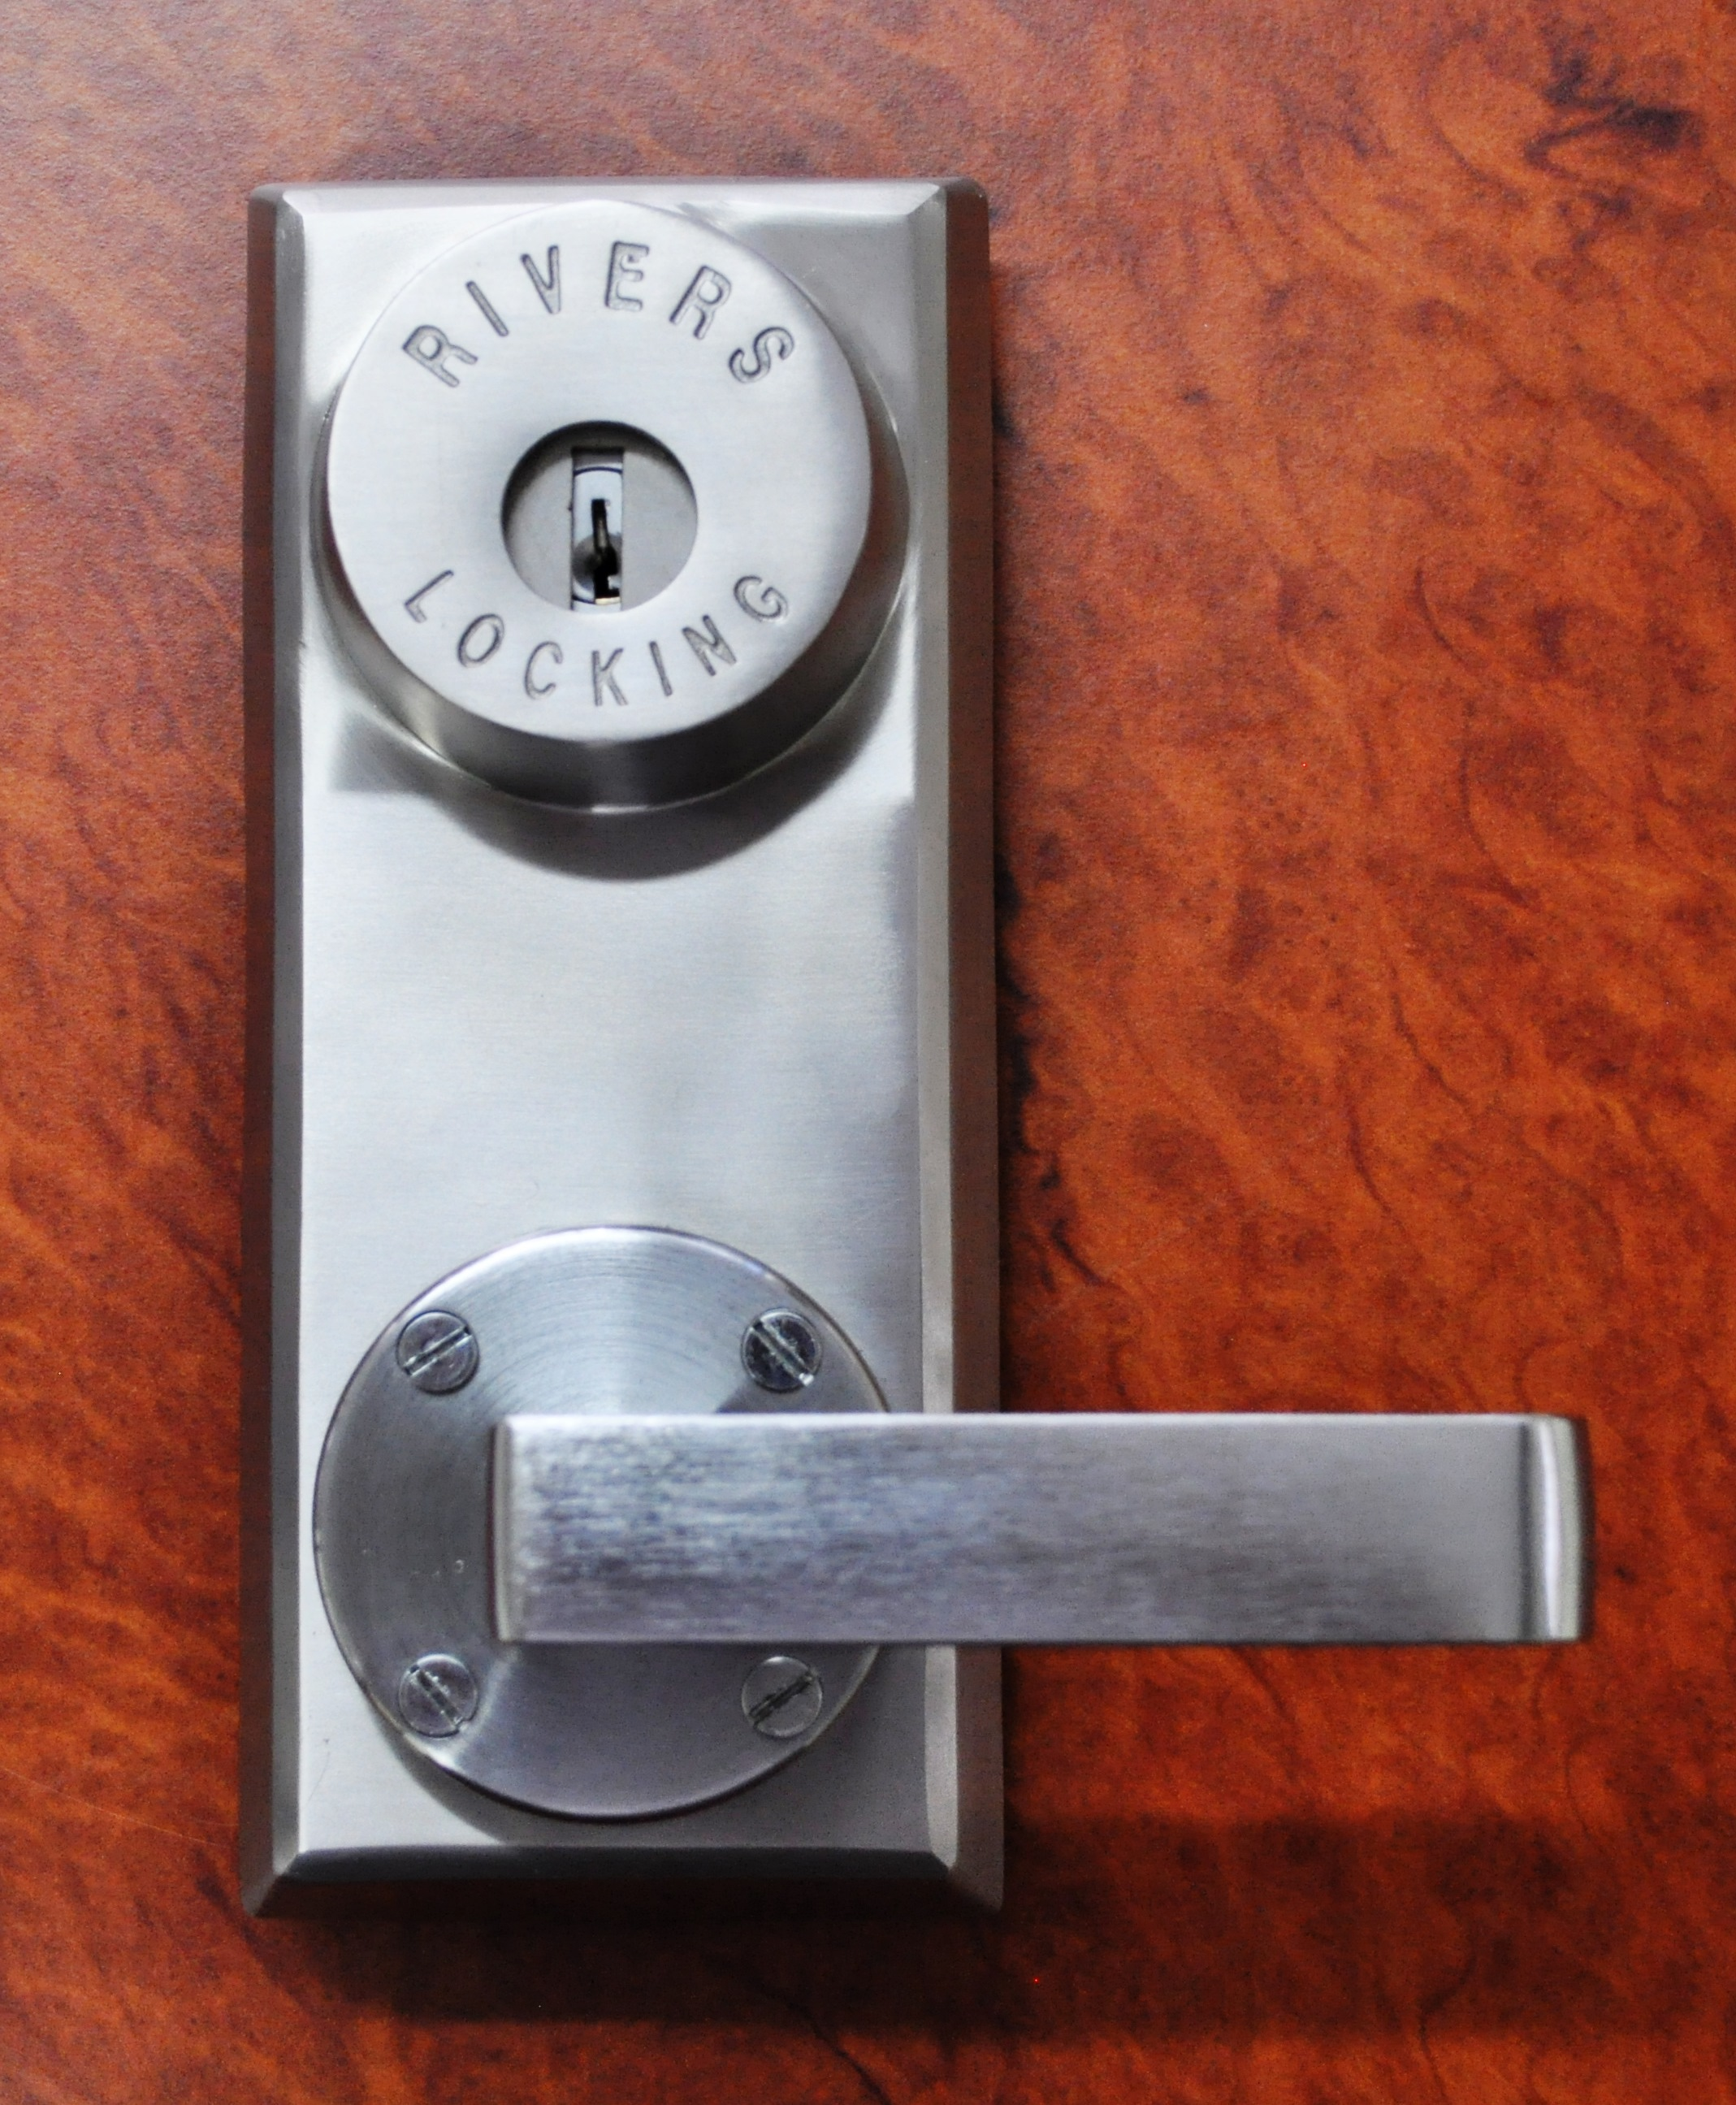 Lever Locking System : Rivers brings new four point self latching lock to market